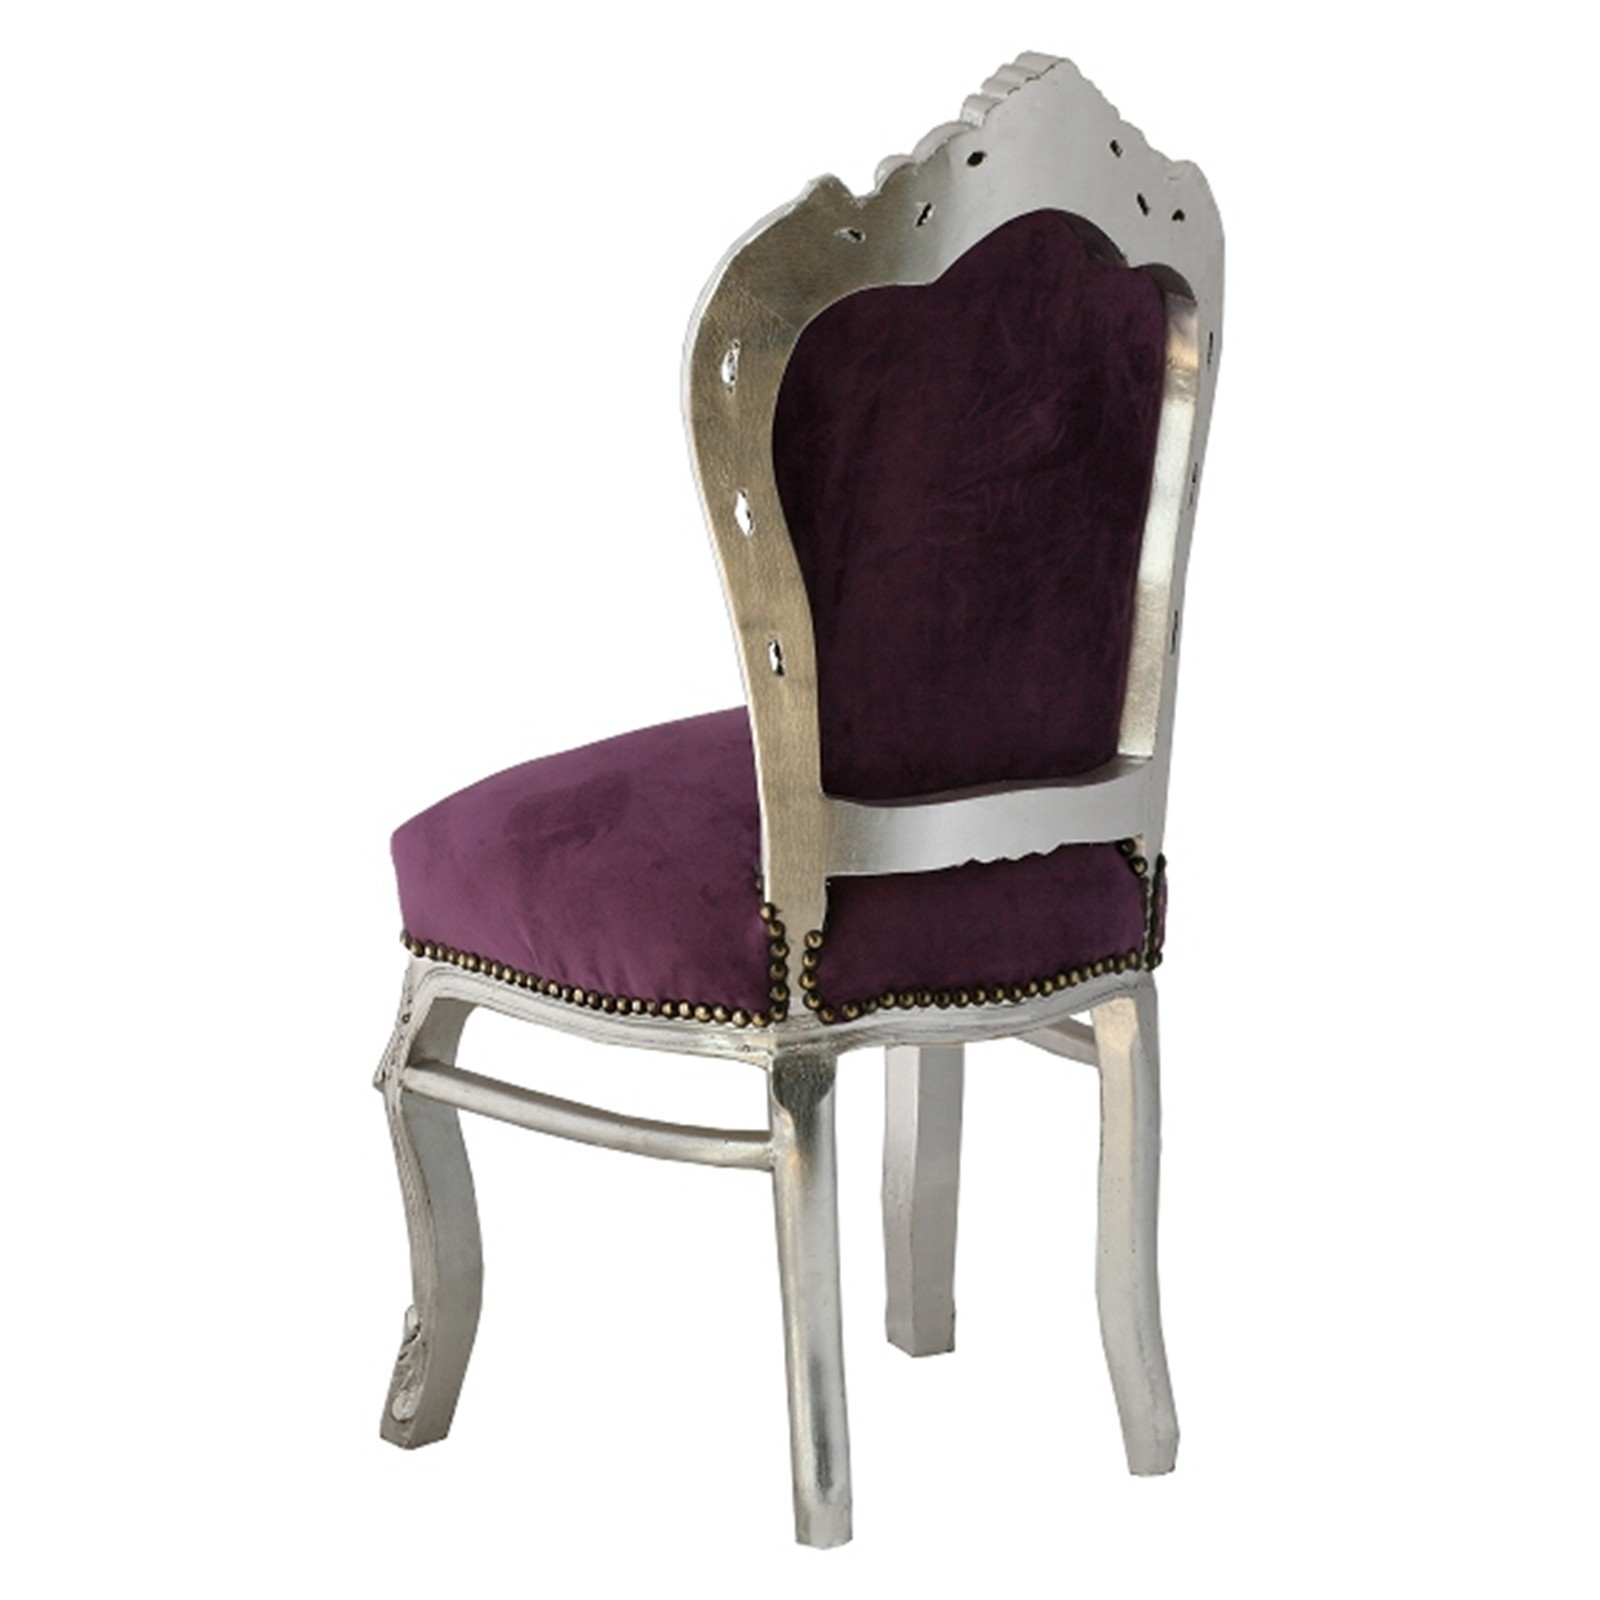 speisezimmer m bel essgruppe barockm bel st hle 6 st hle in violett lila silber. Black Bedroom Furniture Sets. Home Design Ideas